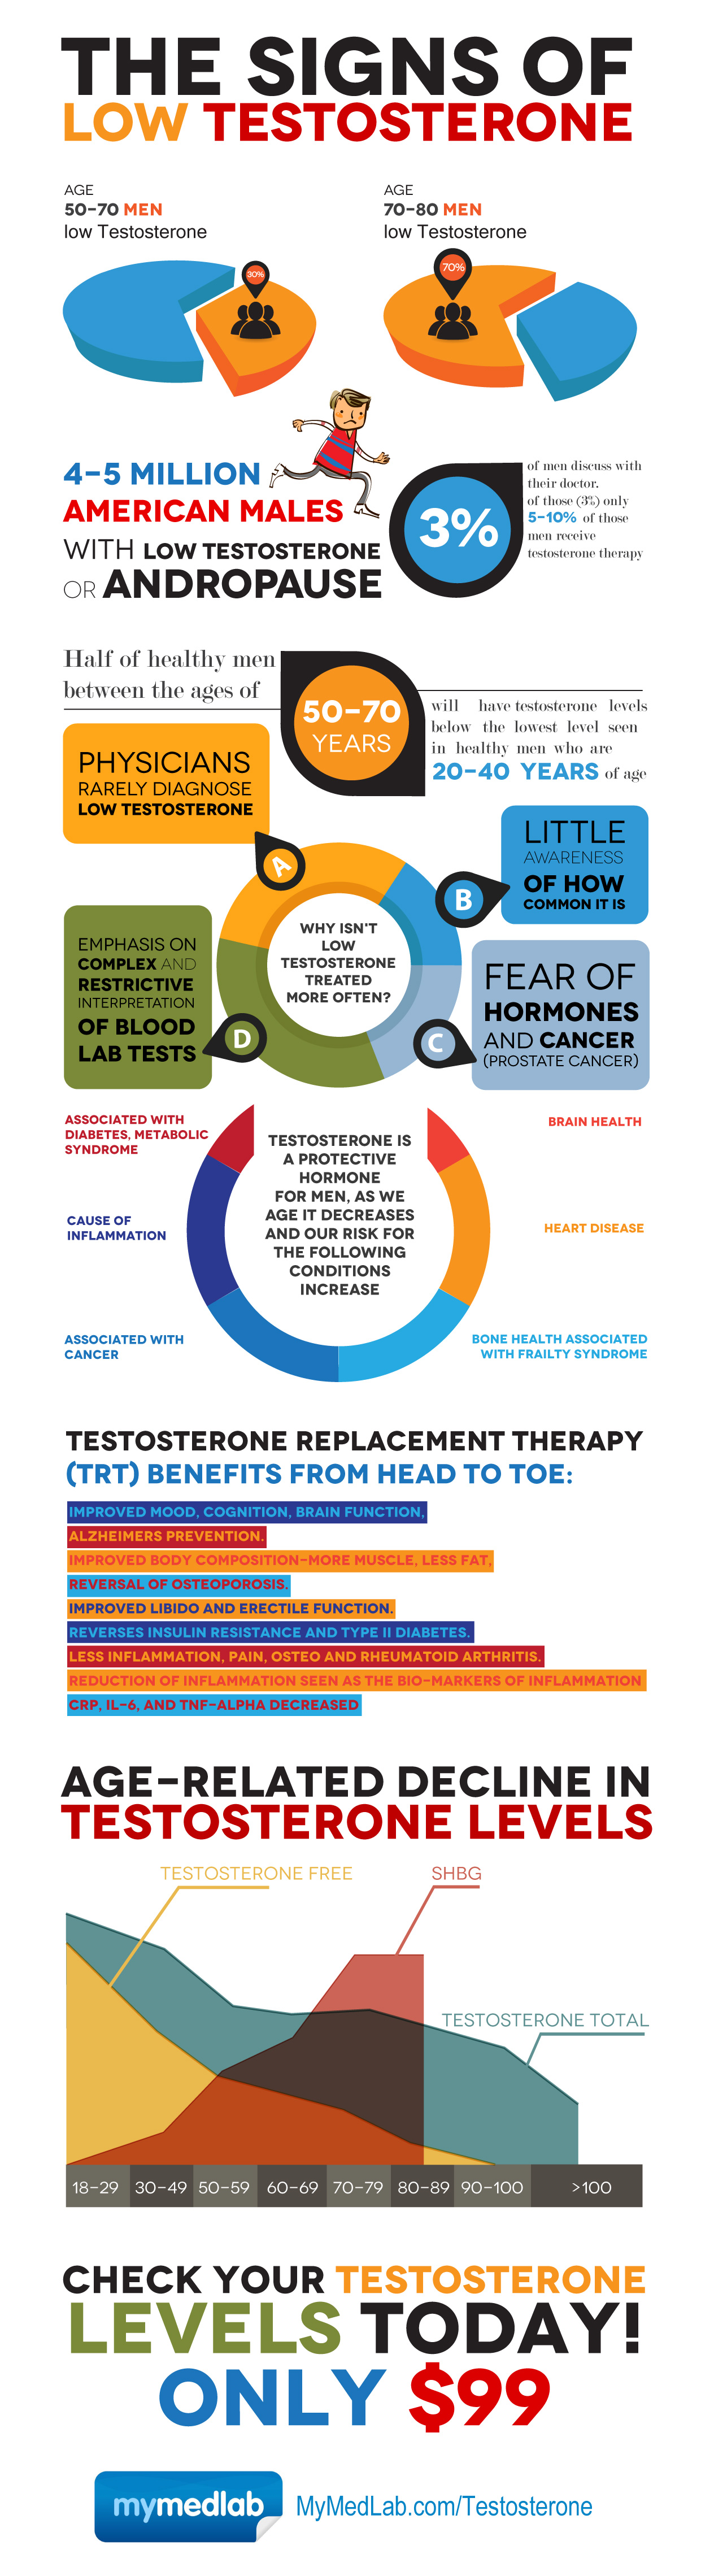 cost of low testosterone treatment